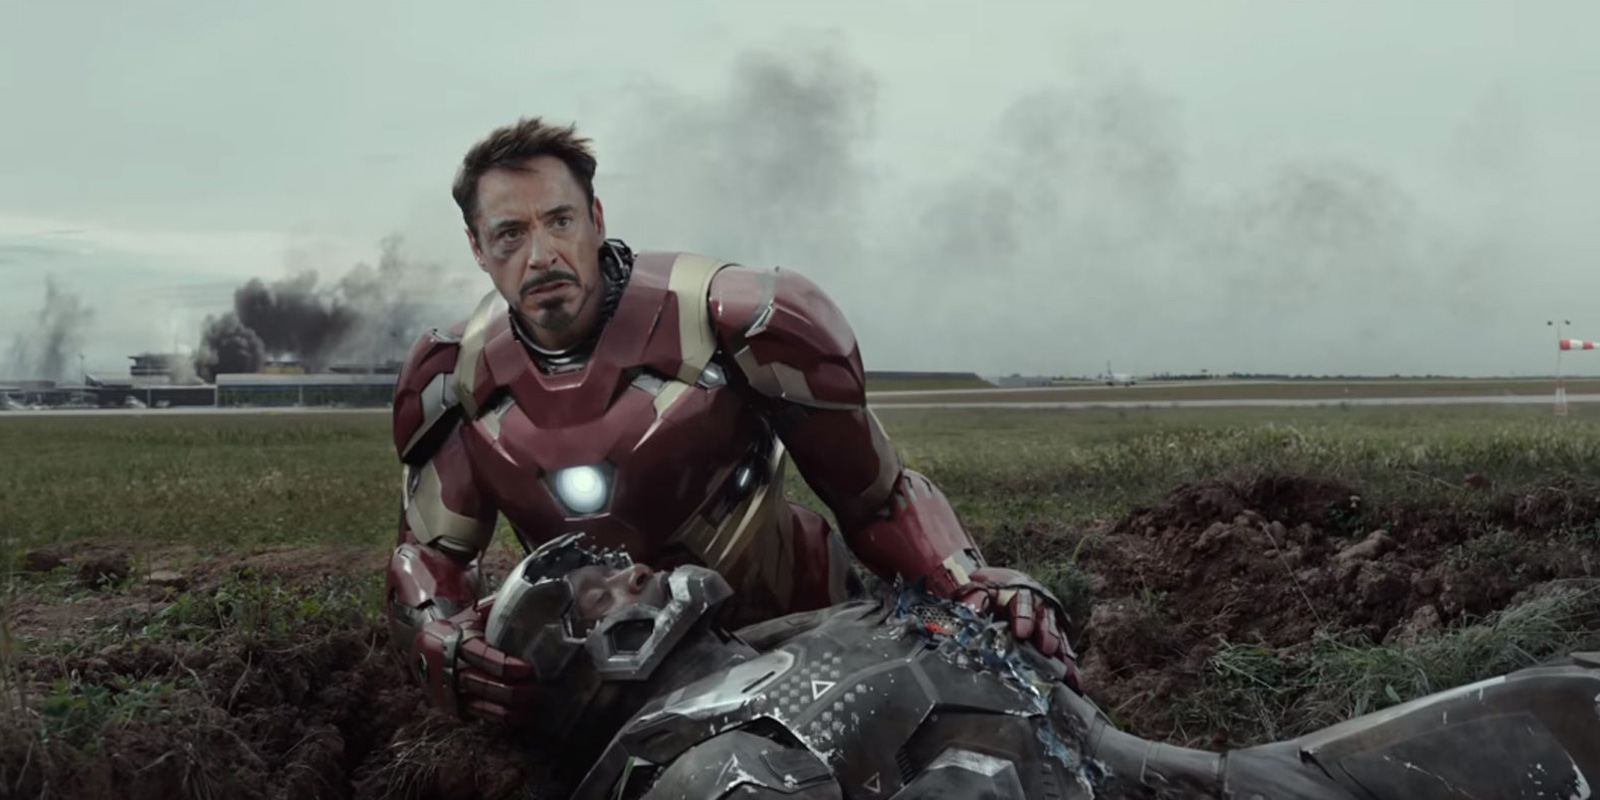 captain-america-civil-war-still-1.jpg